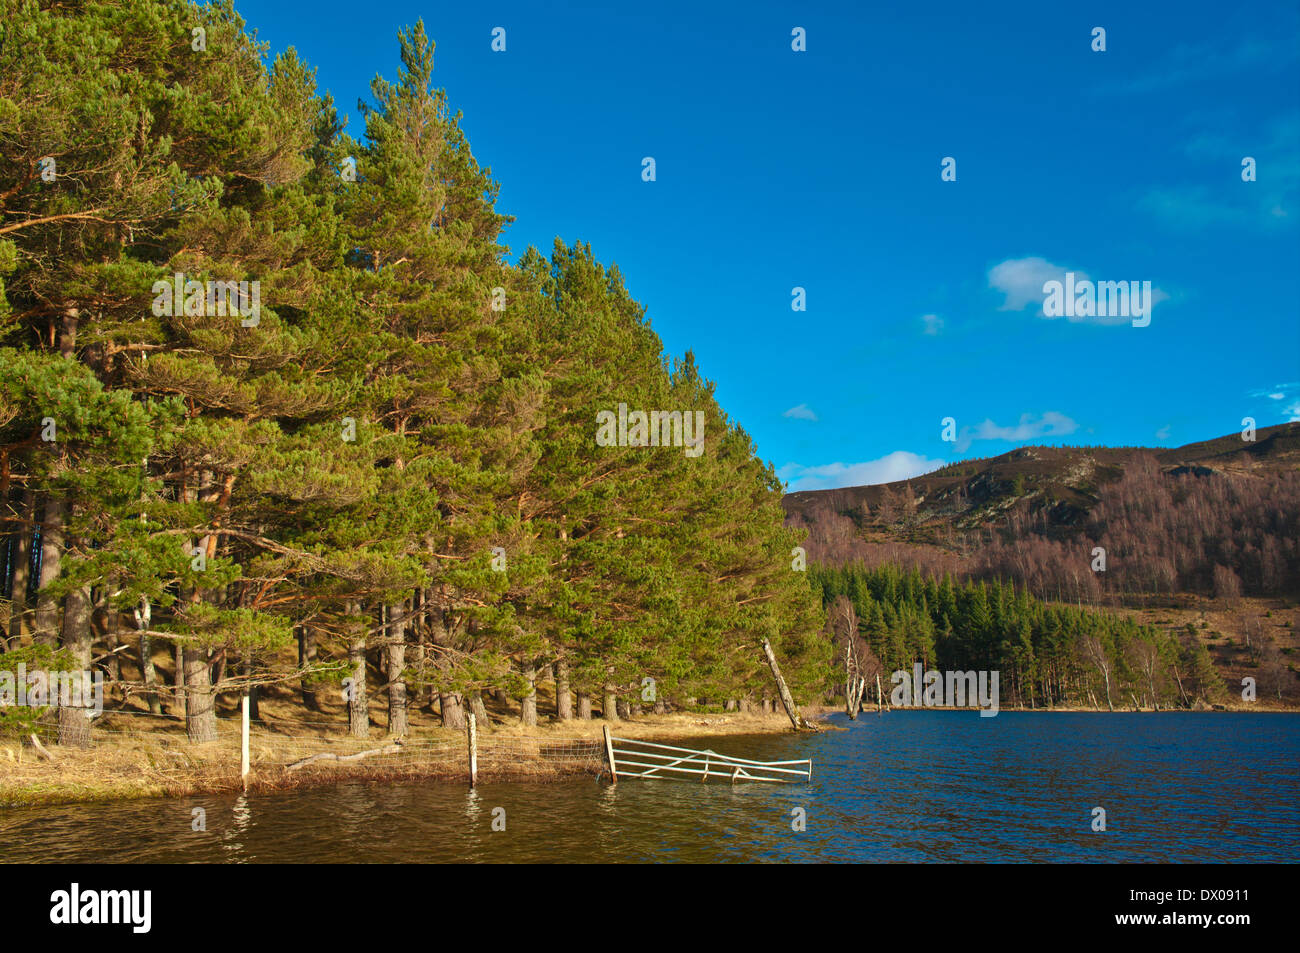 Pine plantation in winter sunshine at the edge of Loch Pityoulish near Aviemore, Cairngorms National Park, Highlands Scotland UK - Stock Image